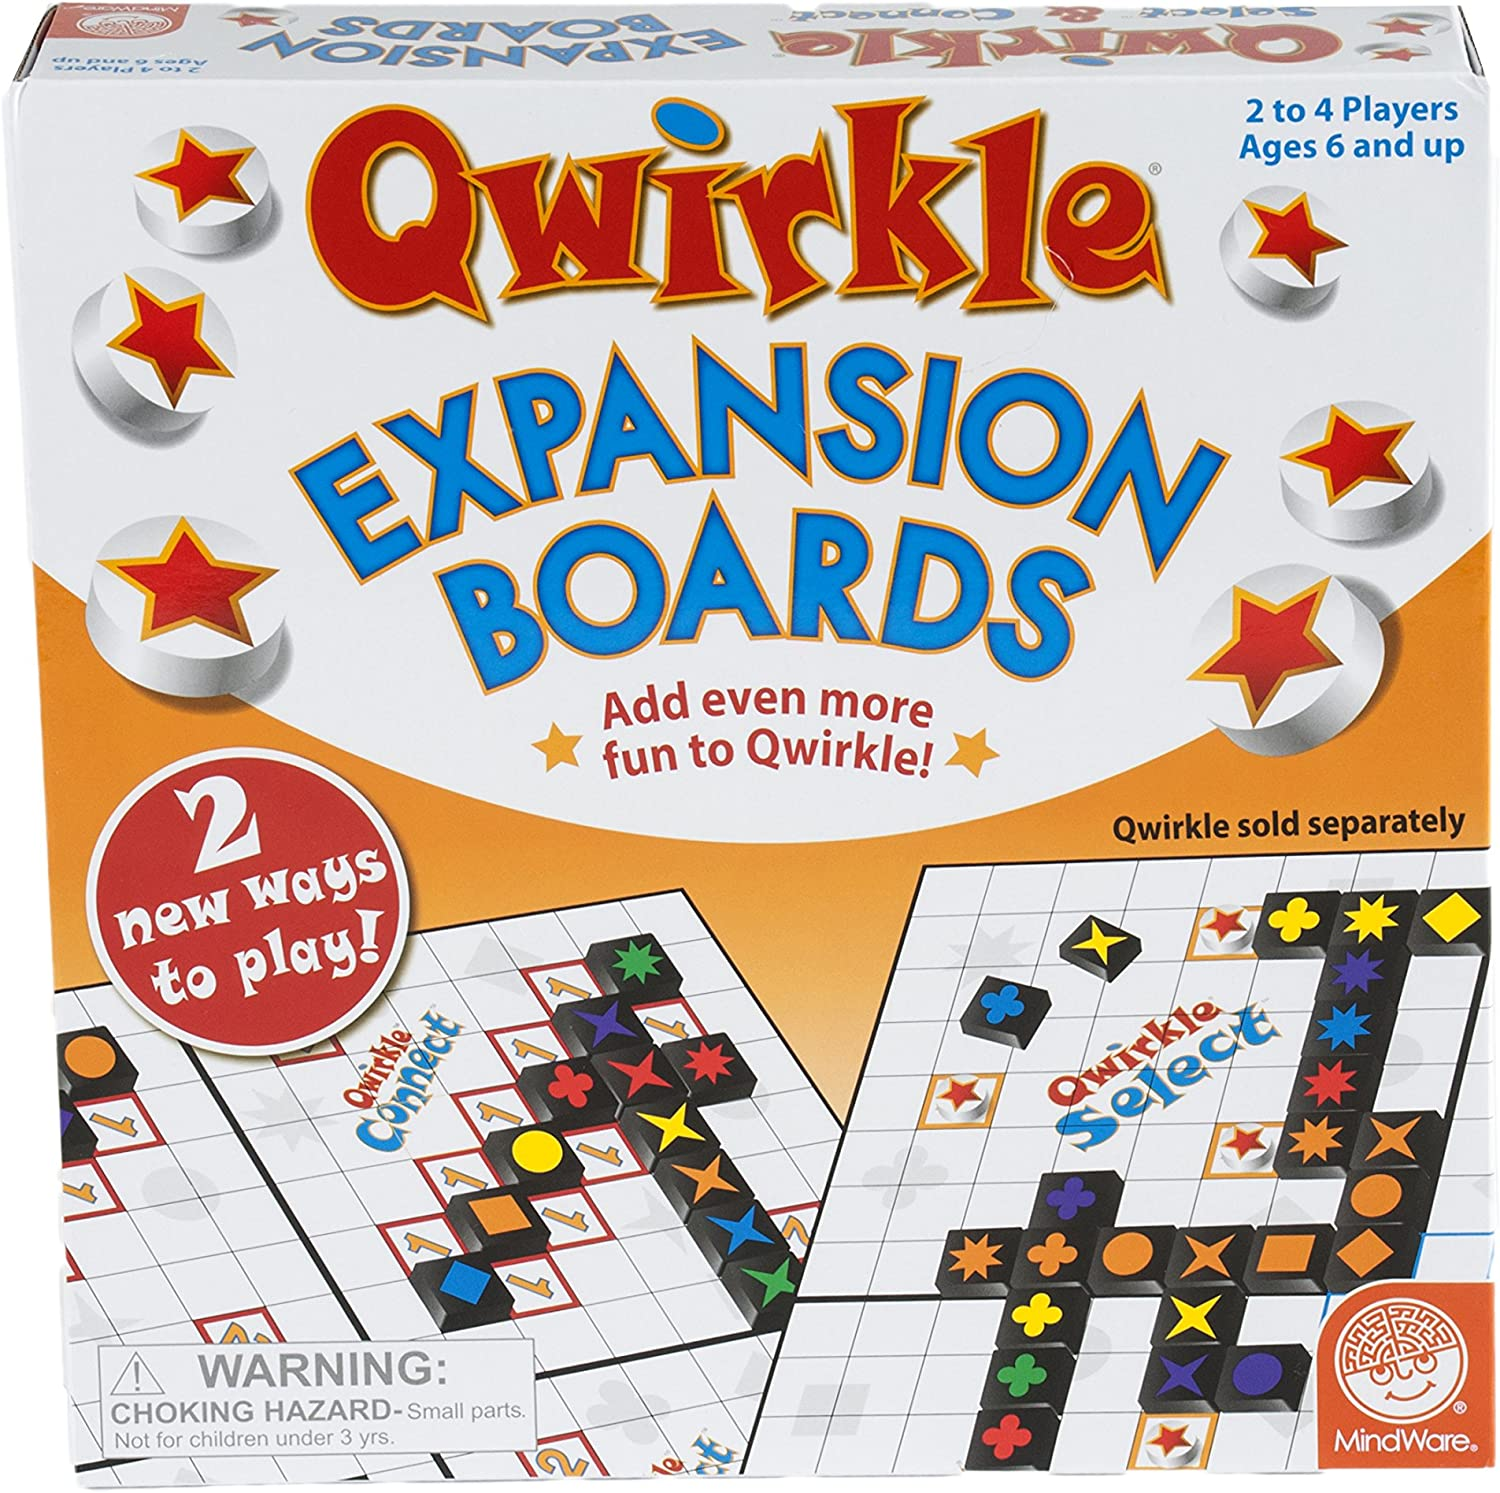 Qwirkle Expansion Boards Set by MindWare